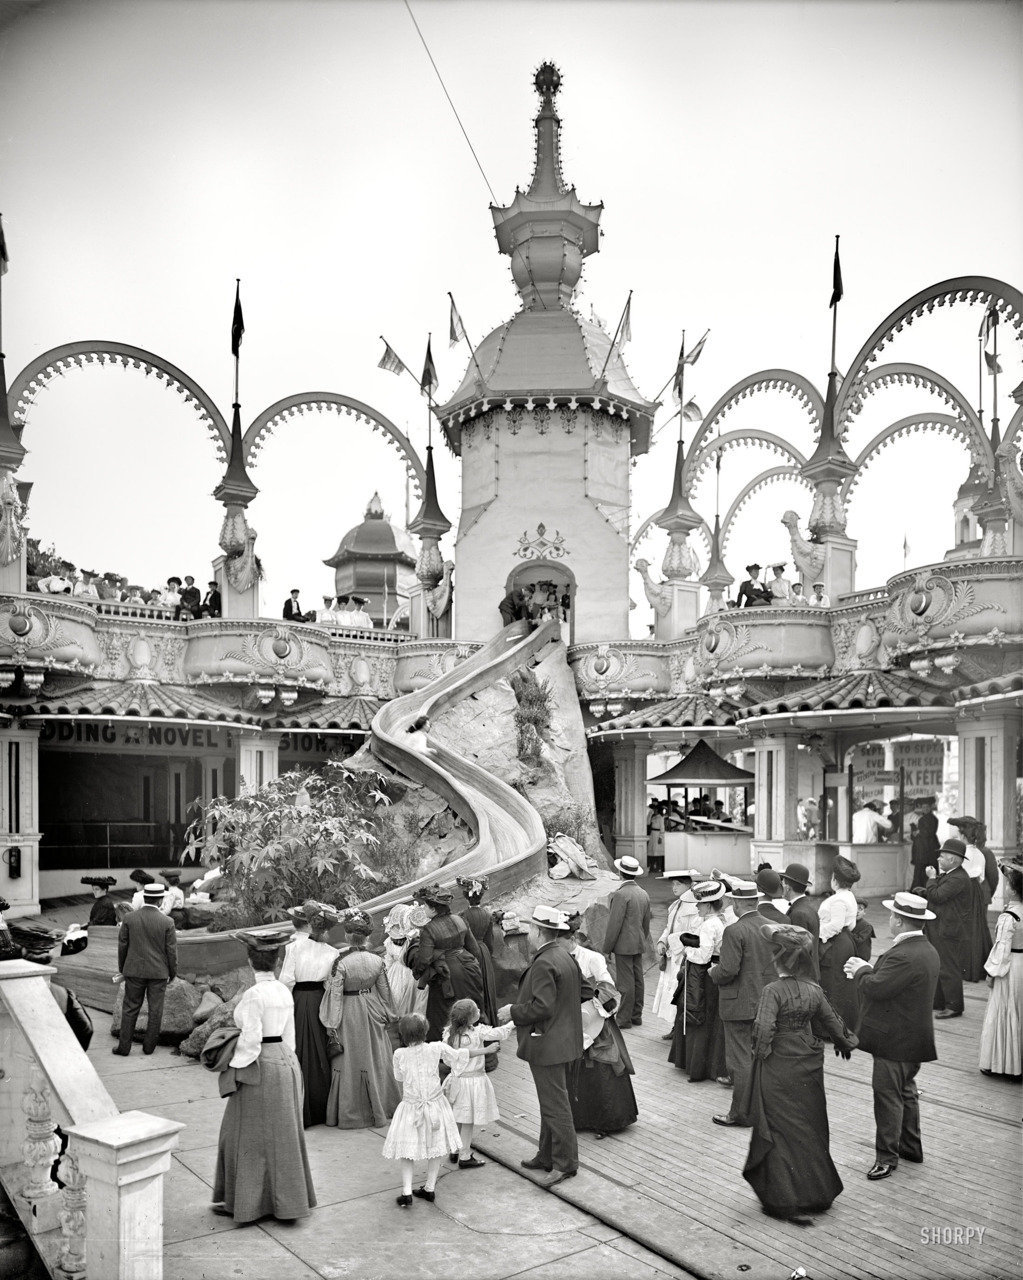 lostsplendor: Helter Skelter, Coney Island c. 1905 (via Shorpy Historical Photo Archive)